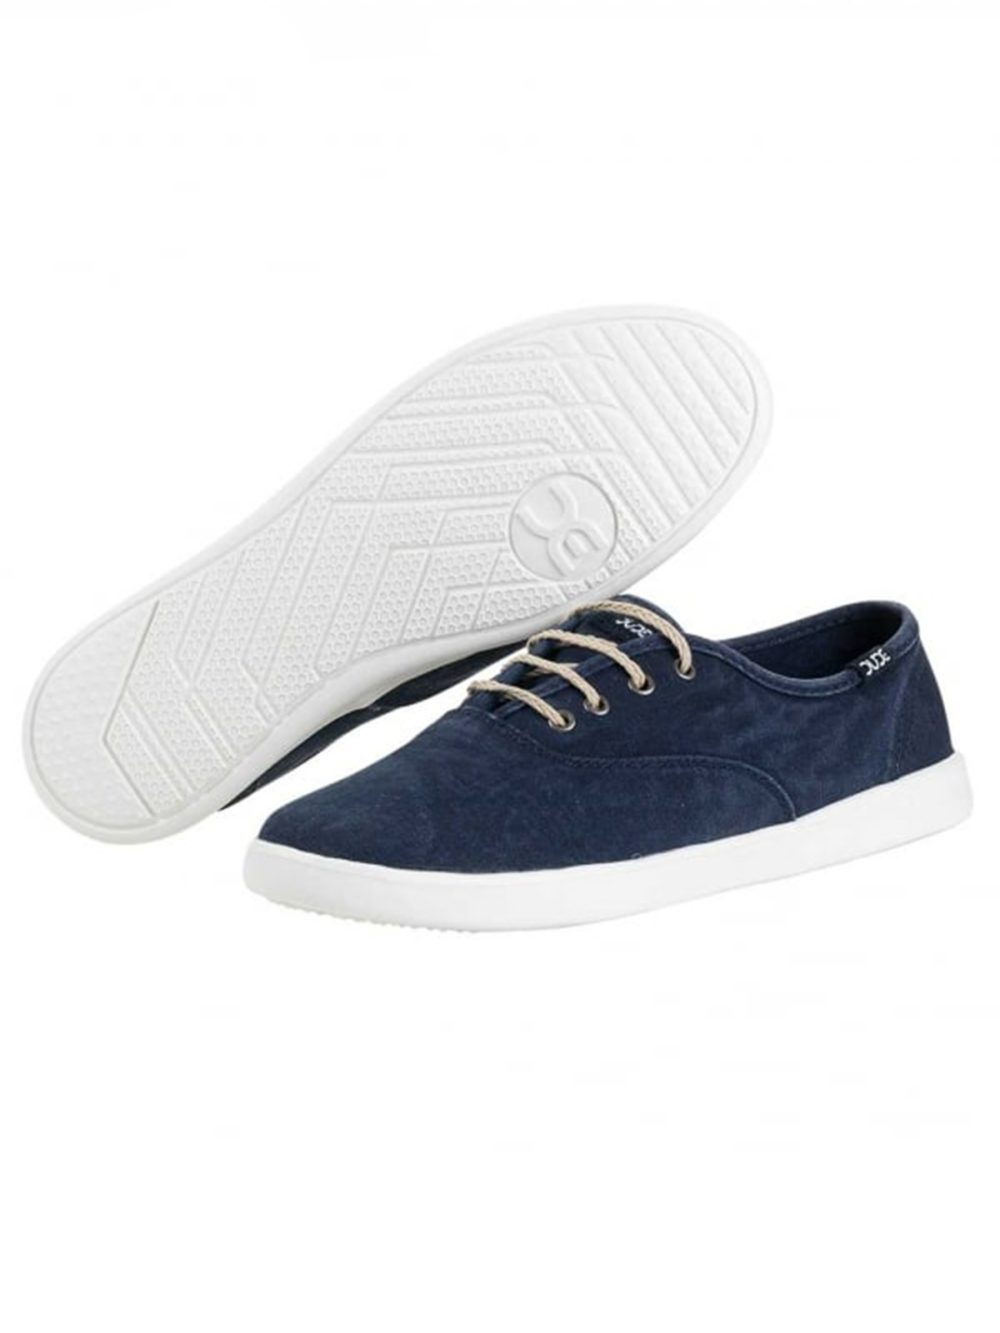 Jenny Navy Canvas Hey Dude Shoes Katie Kerr Women's Clothing